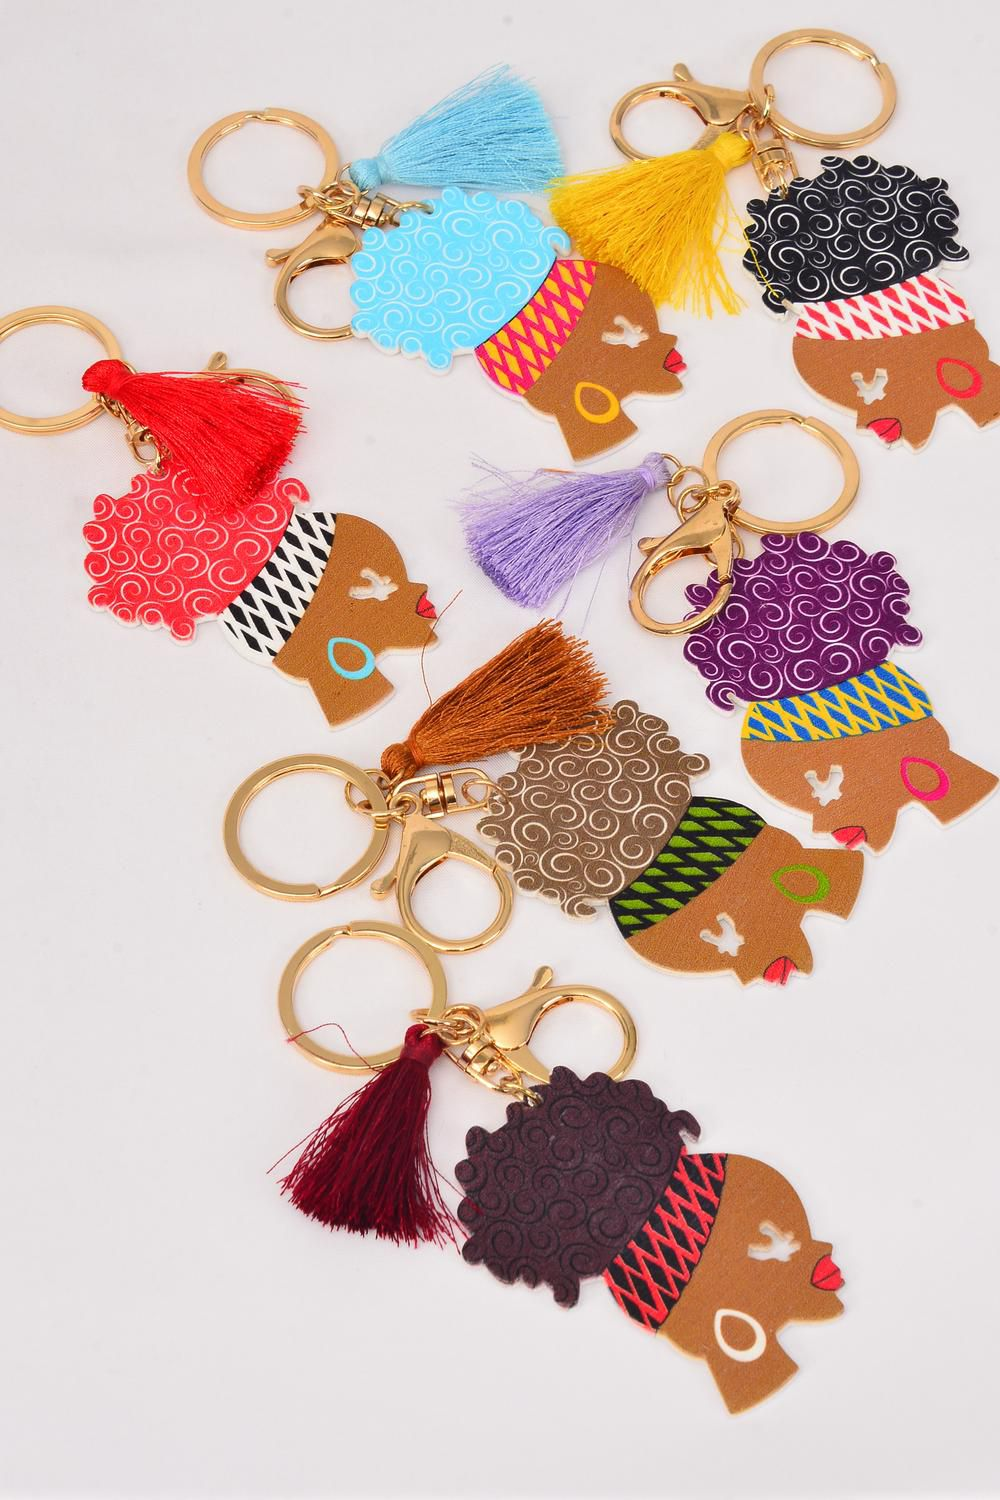 "Key Chain Ethnic Wood Tassel Color Asst/DZ Face Size-2.75""x 1.75"" Wide,2 of each Color Asst,Hang Tag & OPP Bag & UPC Code"